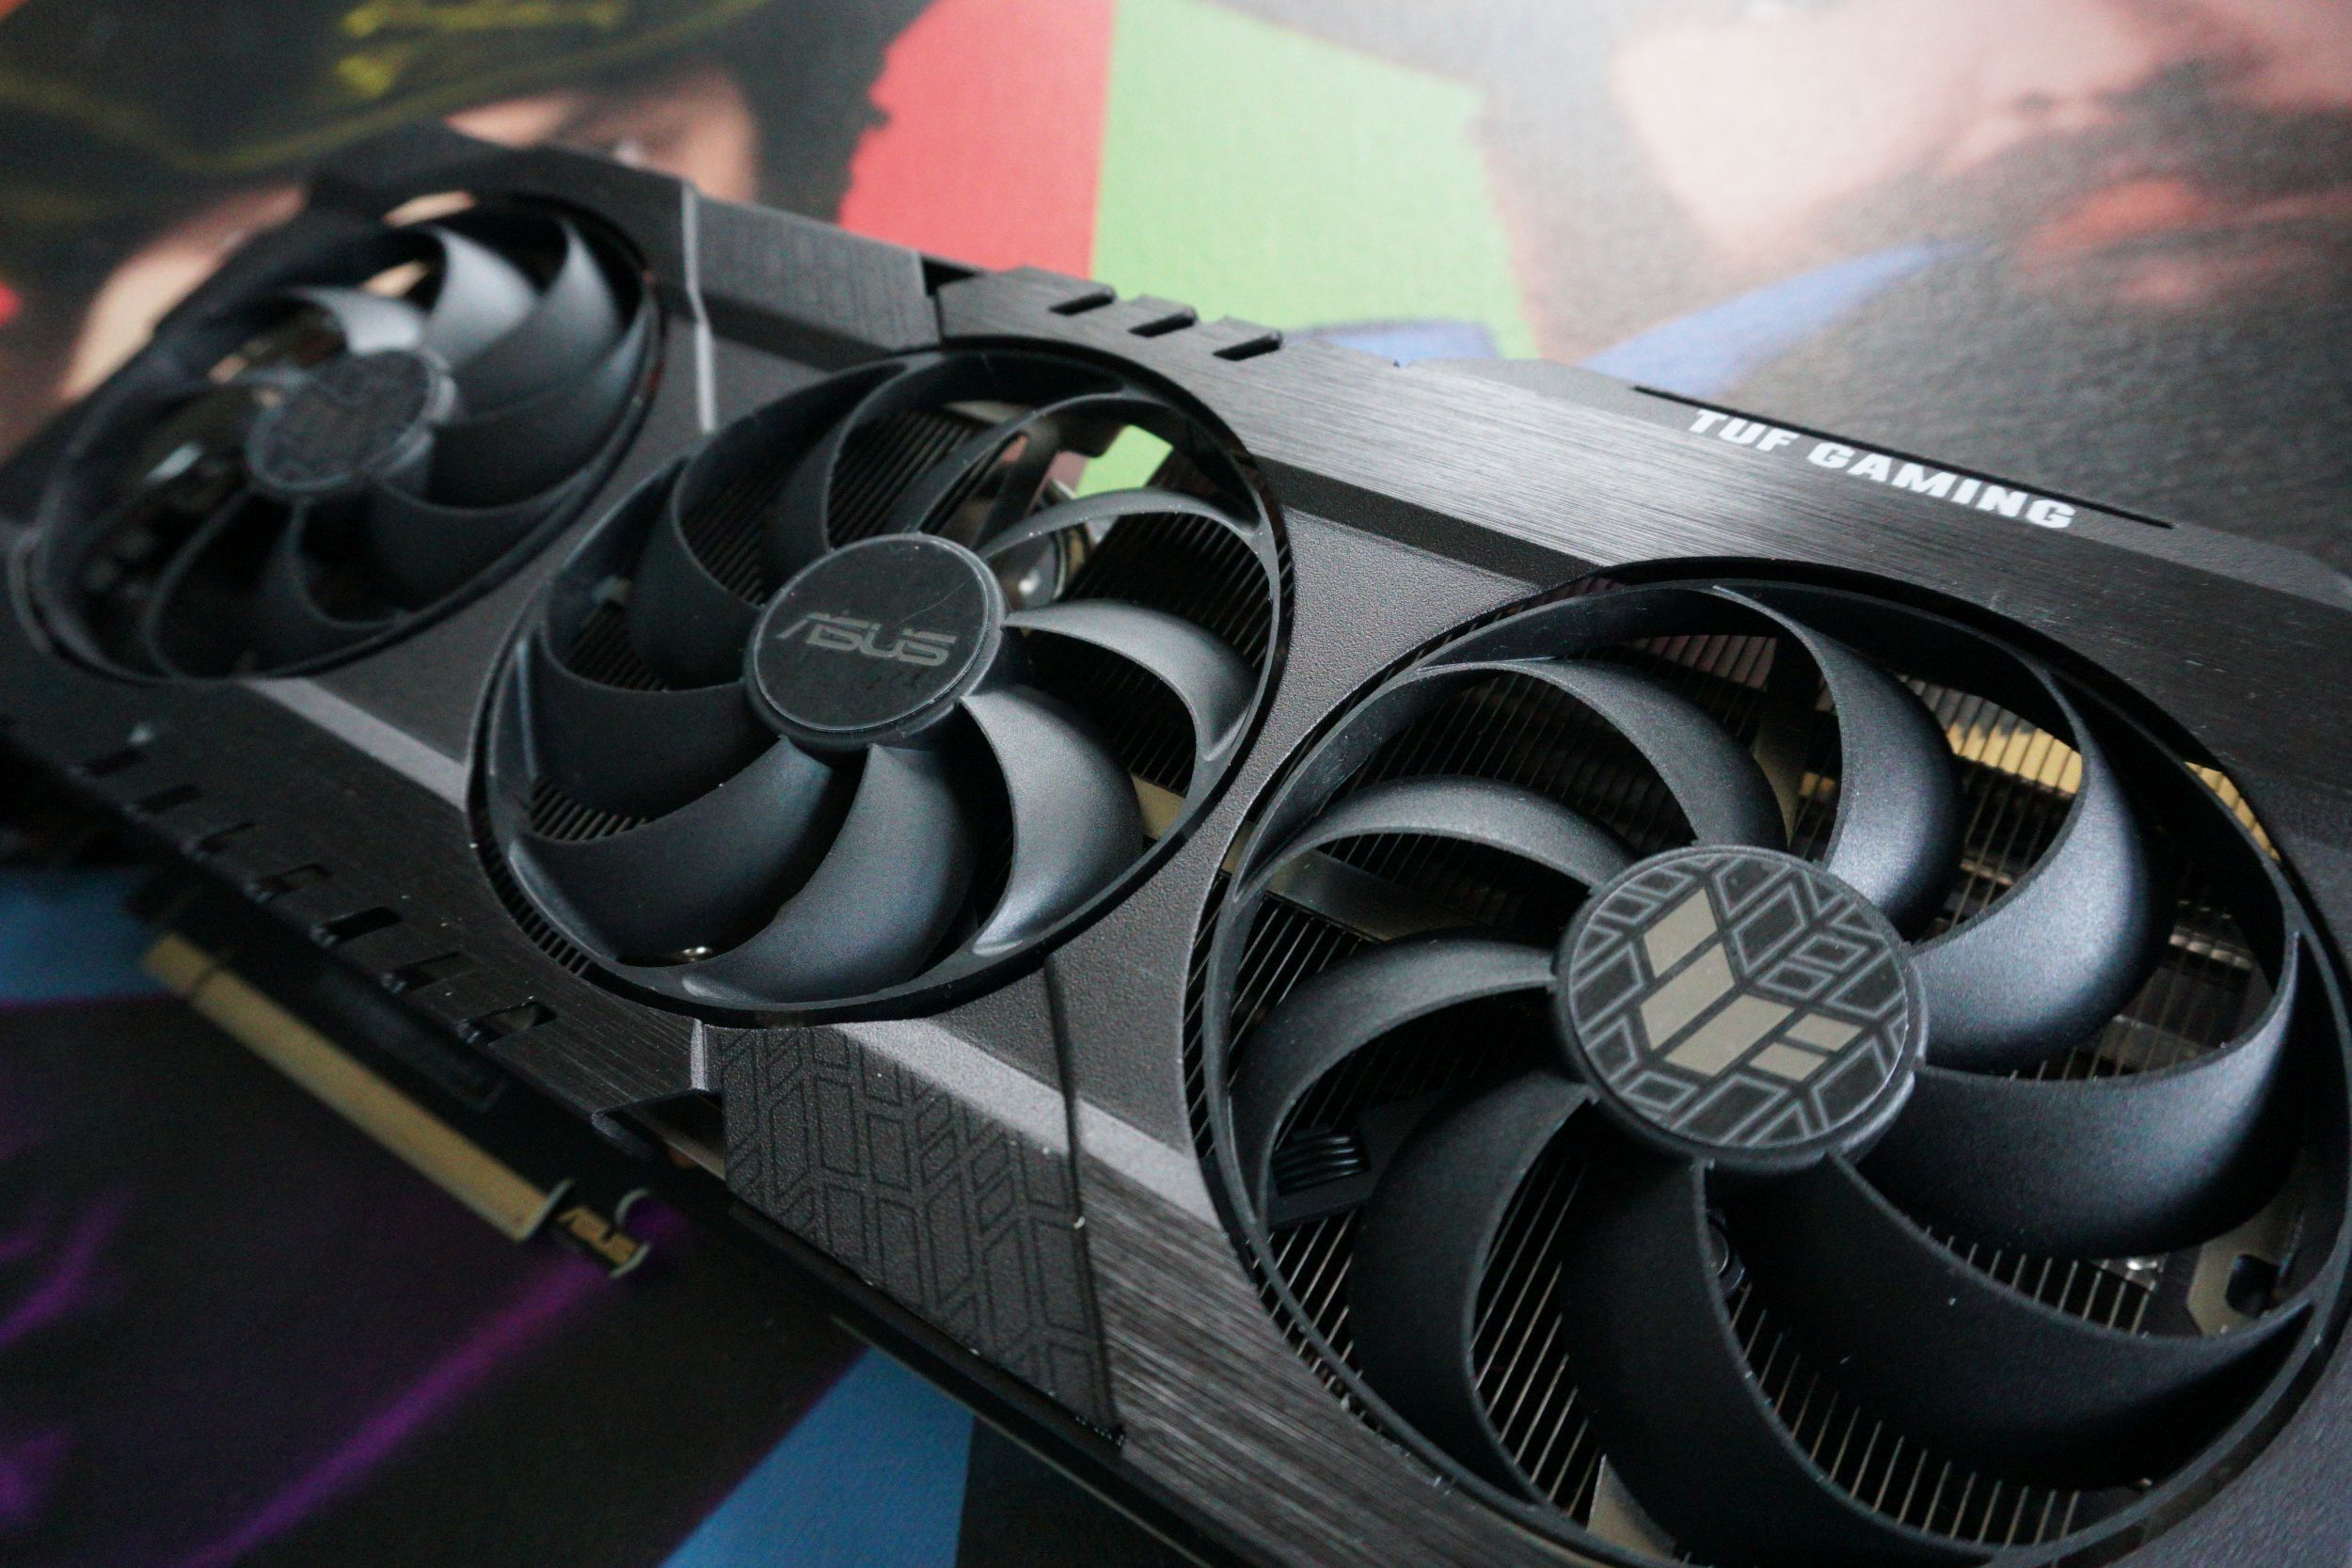 Image of article 'Graphics cards are about to get a lot more expensive, Asus warns'